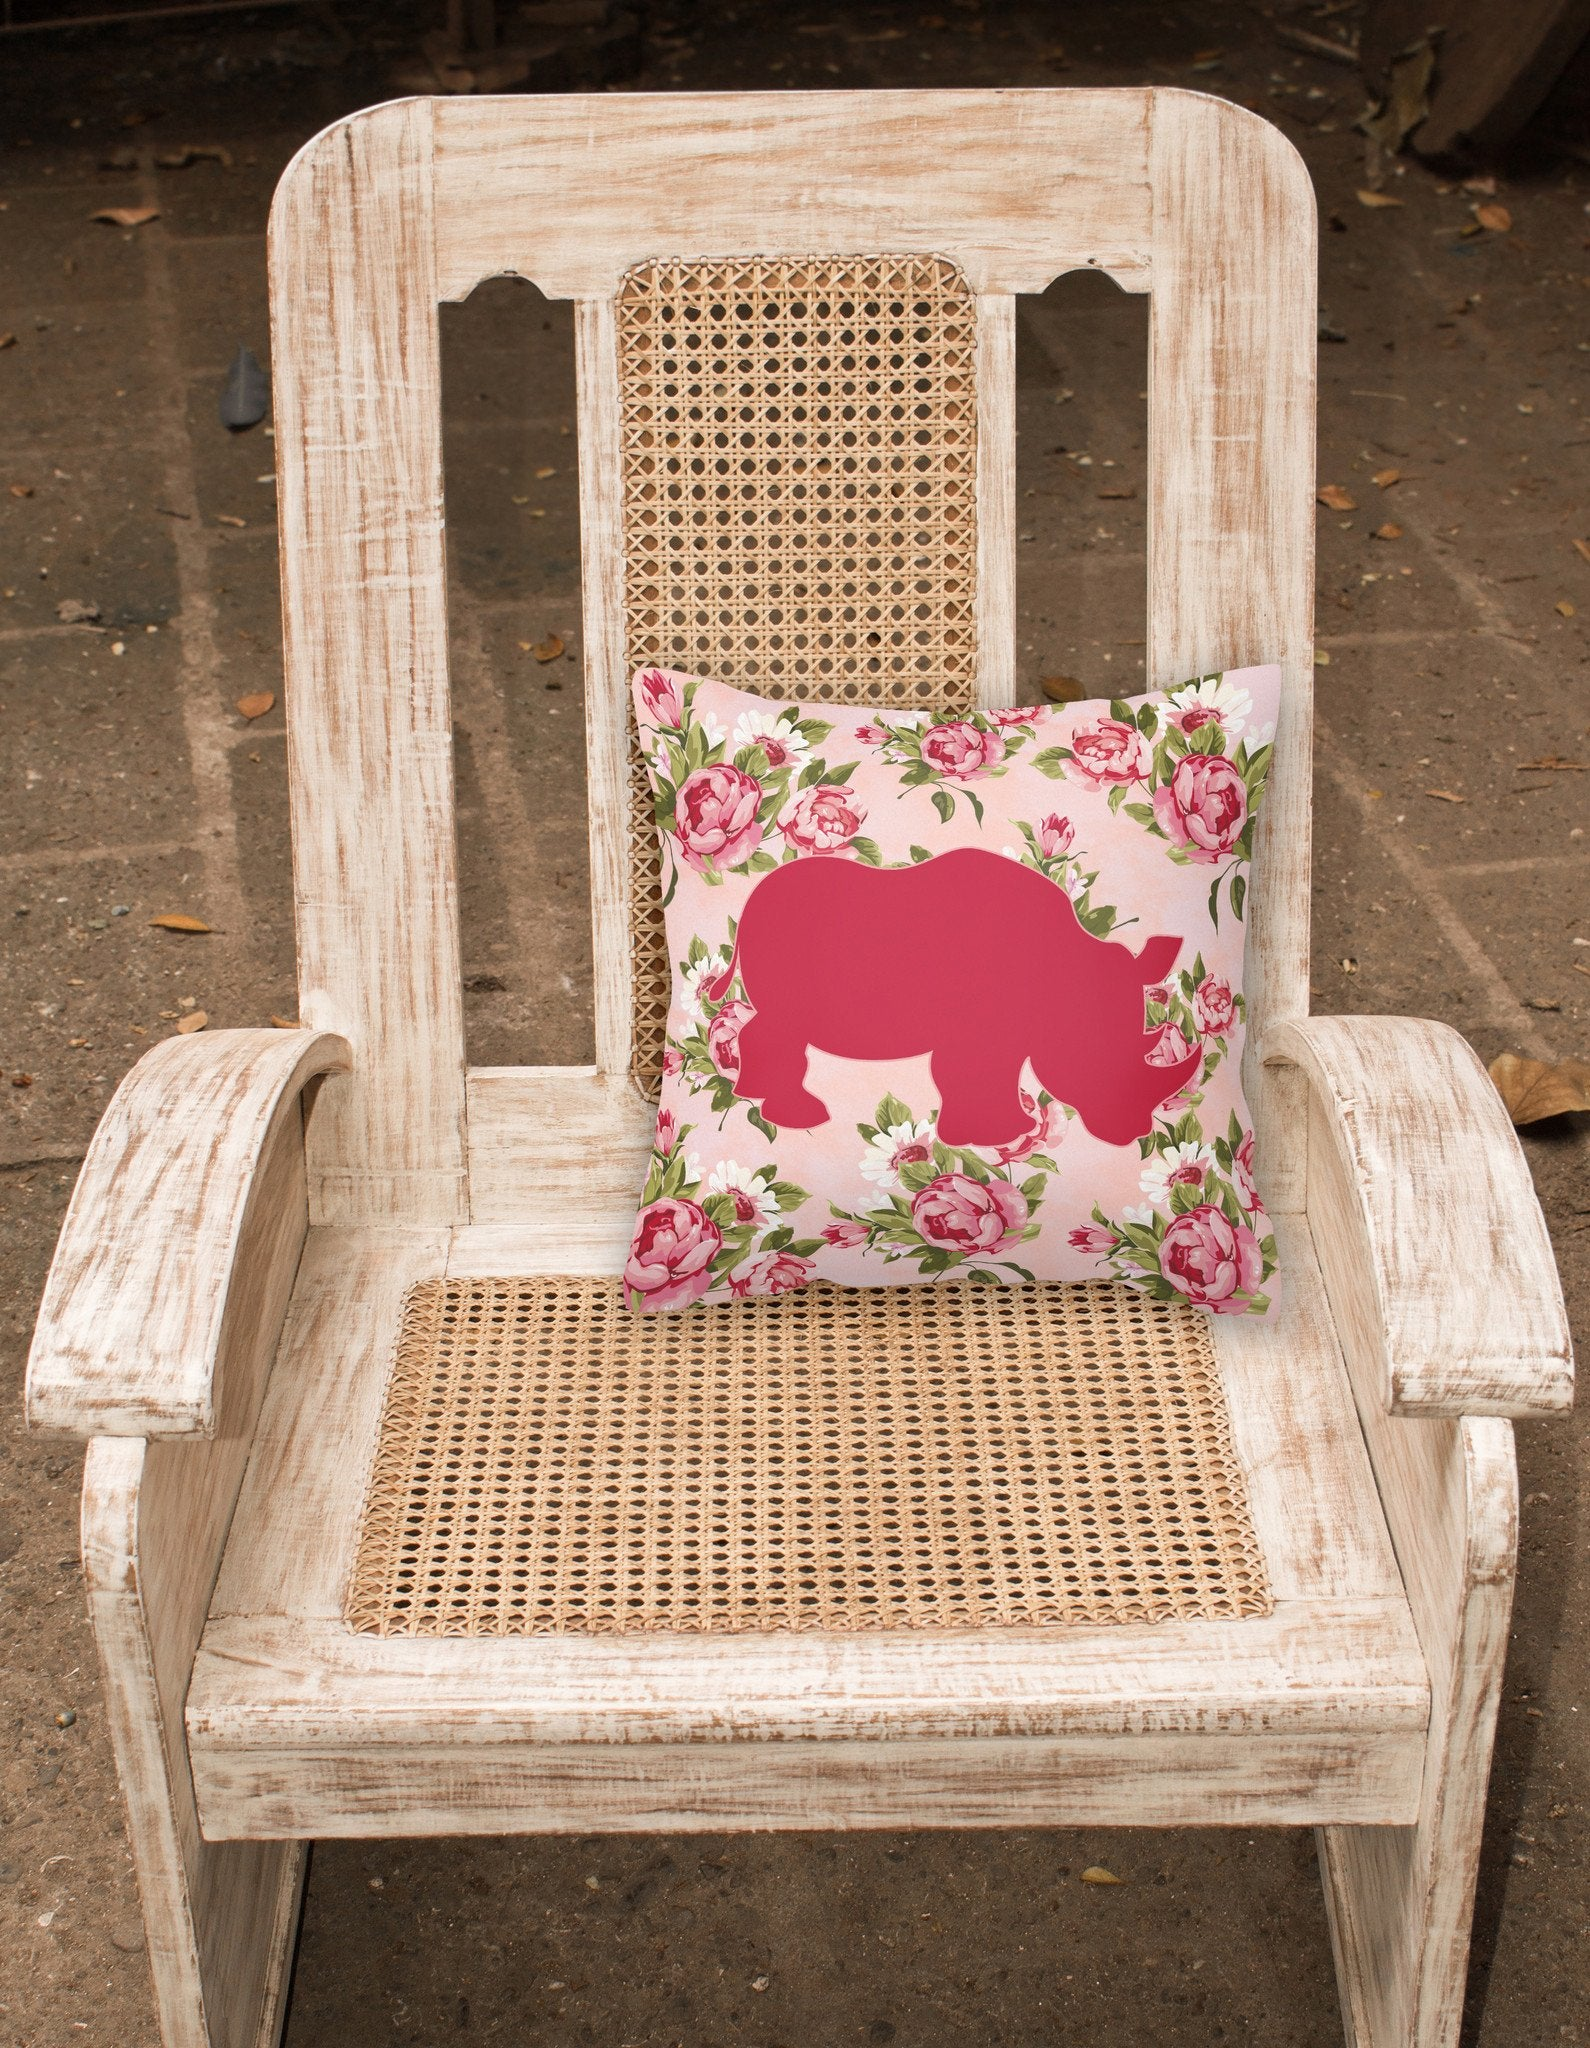 Rhinoceros Shabby Chic Pink Roses   Fabric Decorative Pillow BB1006-RS-PK-PW1414 by Caroline's Treasures